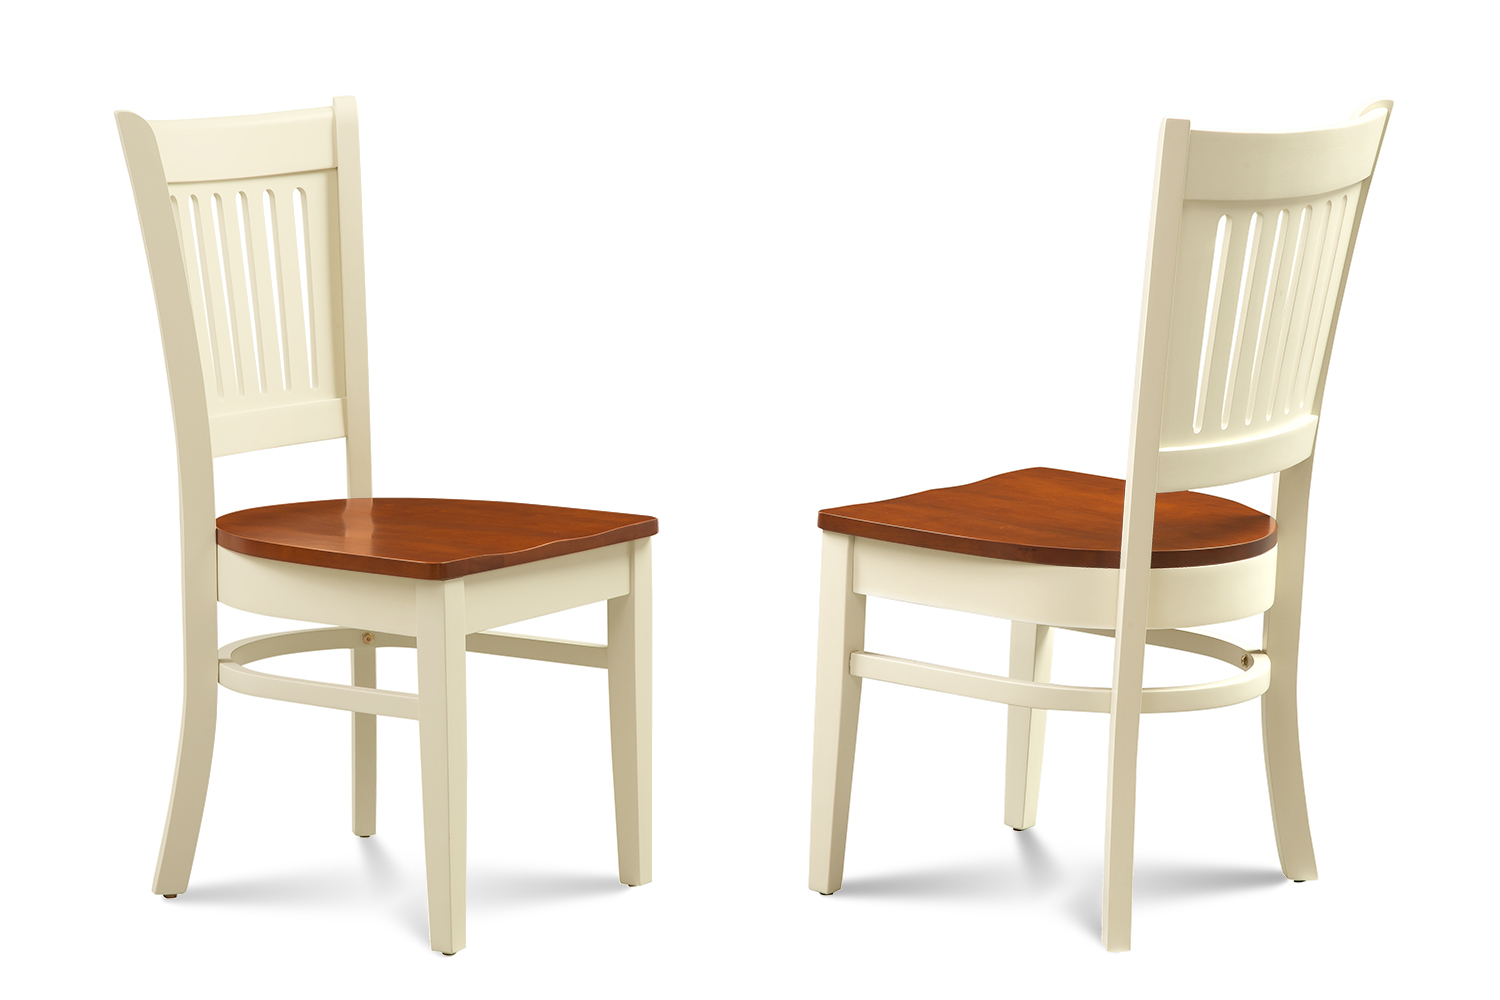 7 PIECE OVAL DINING ROOM TABLE SET w/ 6 WOODEN CHAIRS IN BUTTERMILK & CHERRY